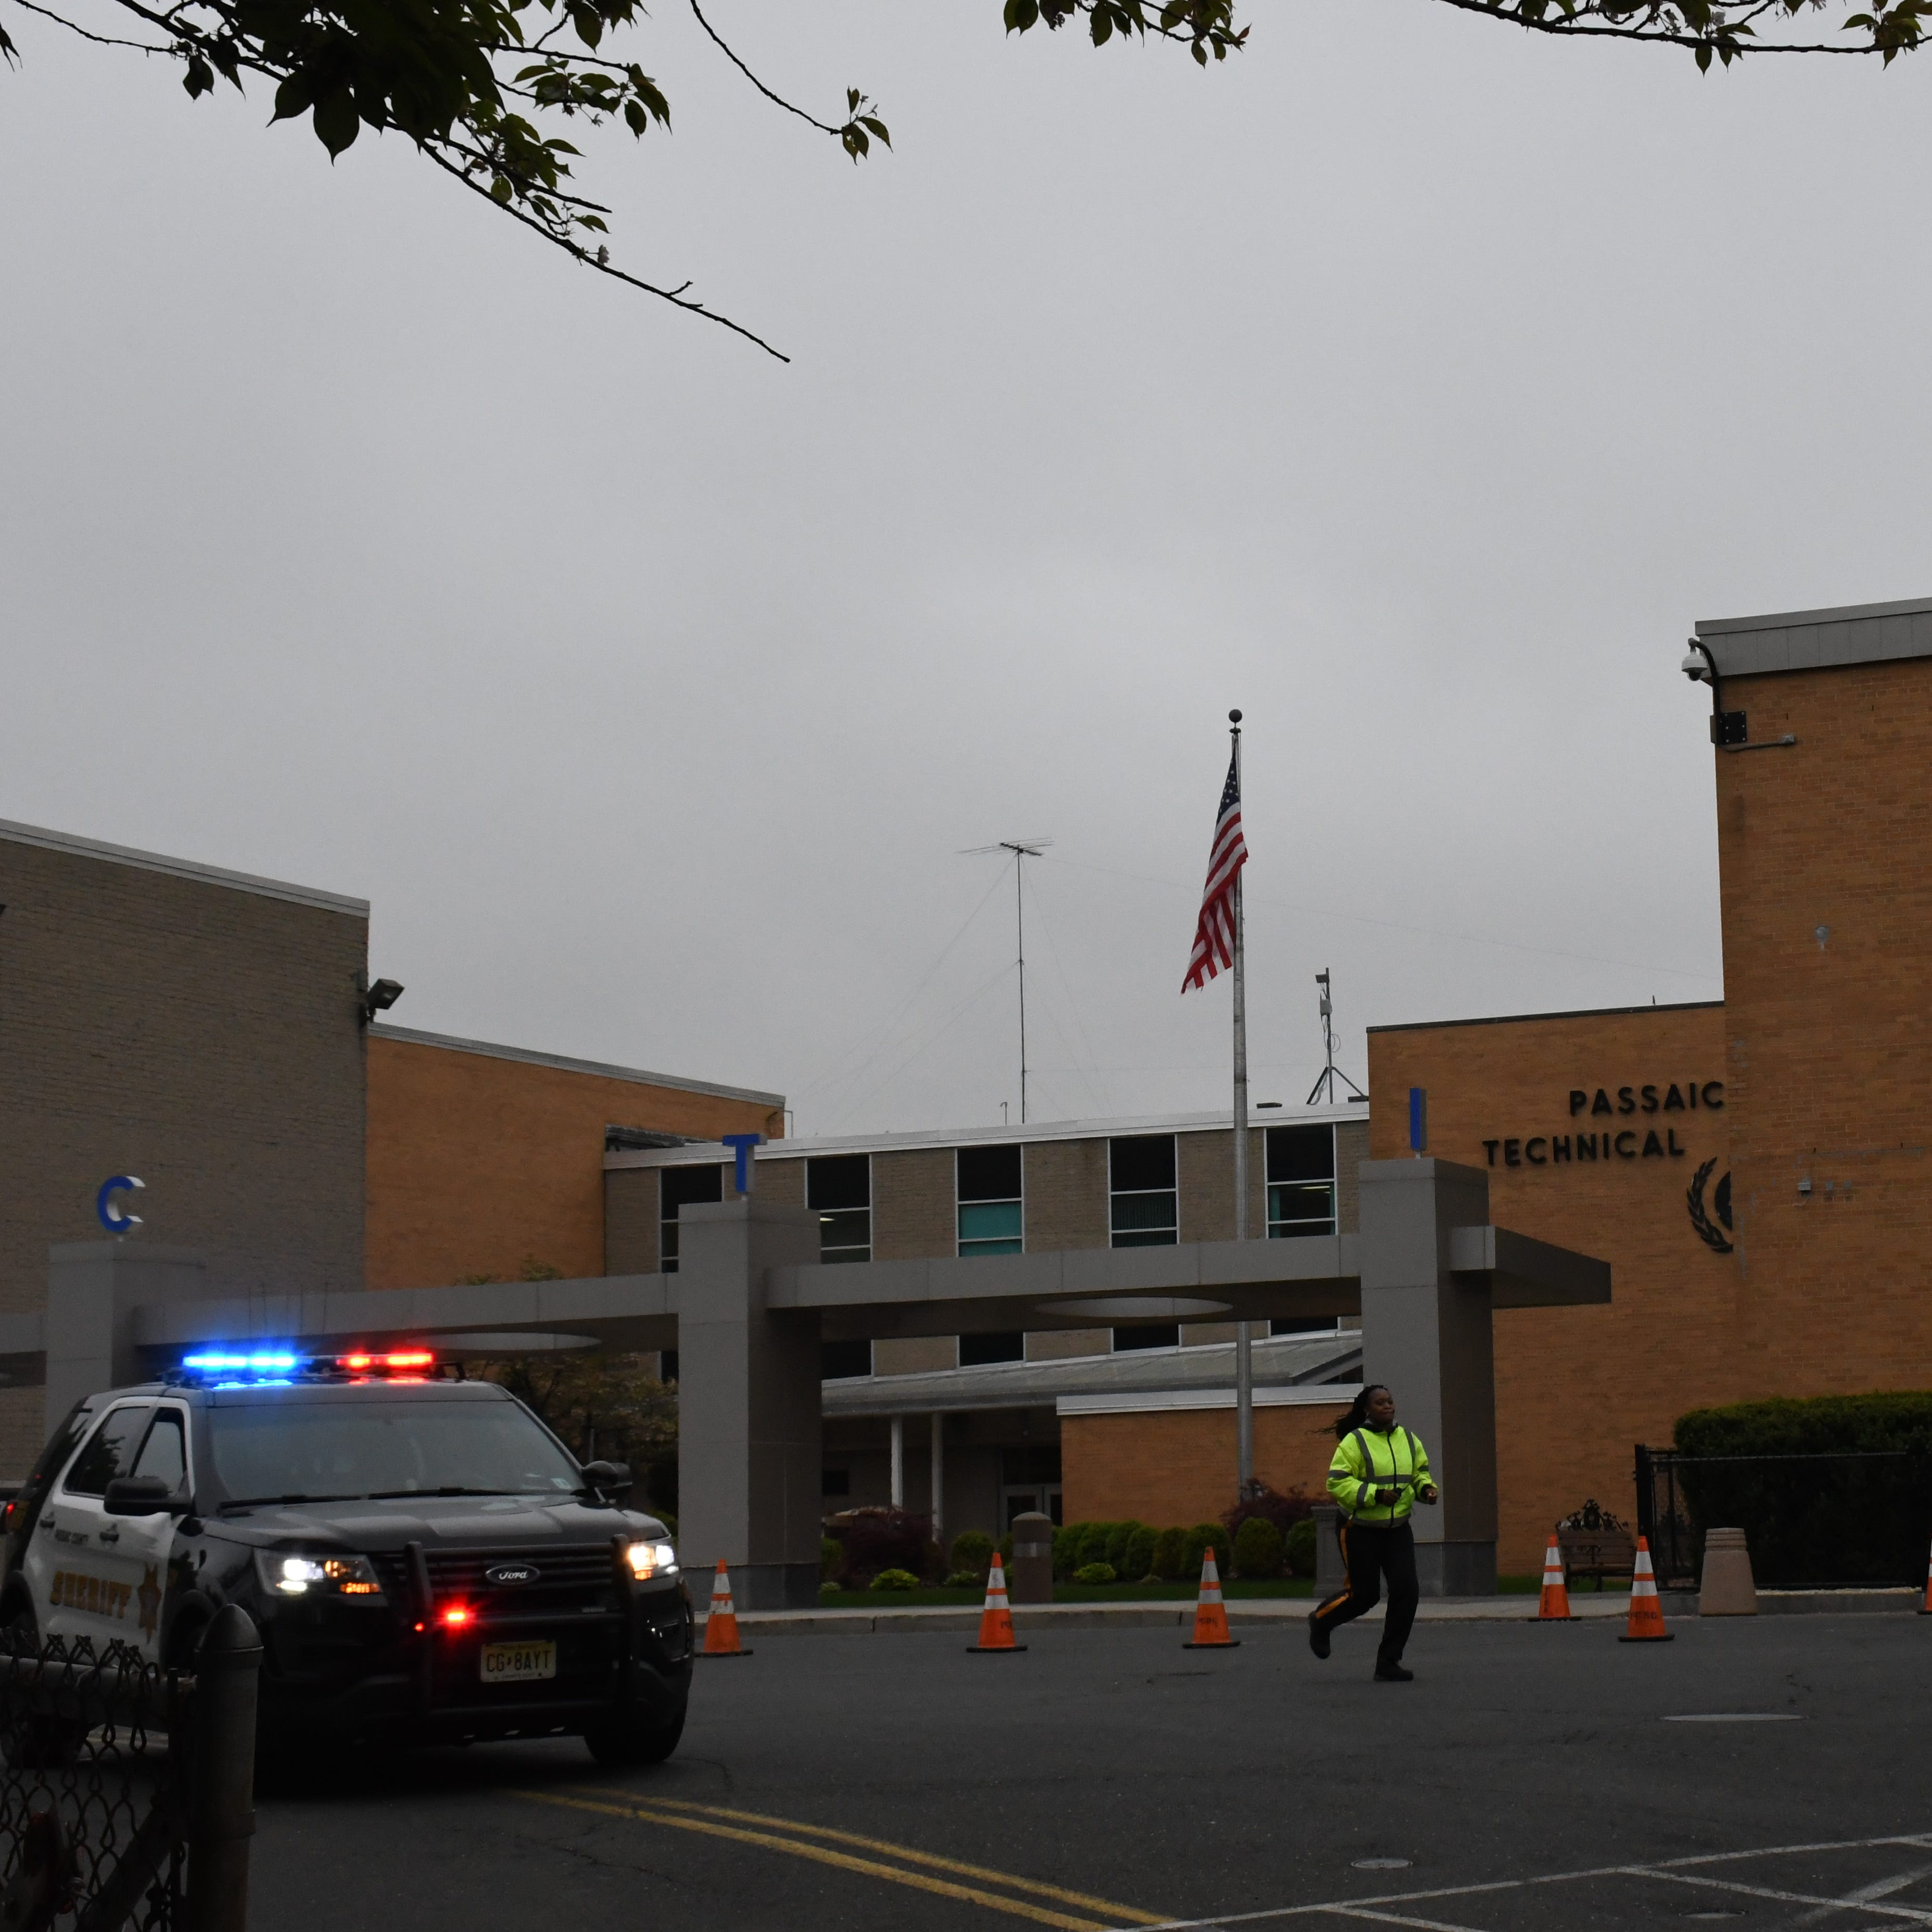 Threat disrupts two NJ tech schools, police deem it not credible